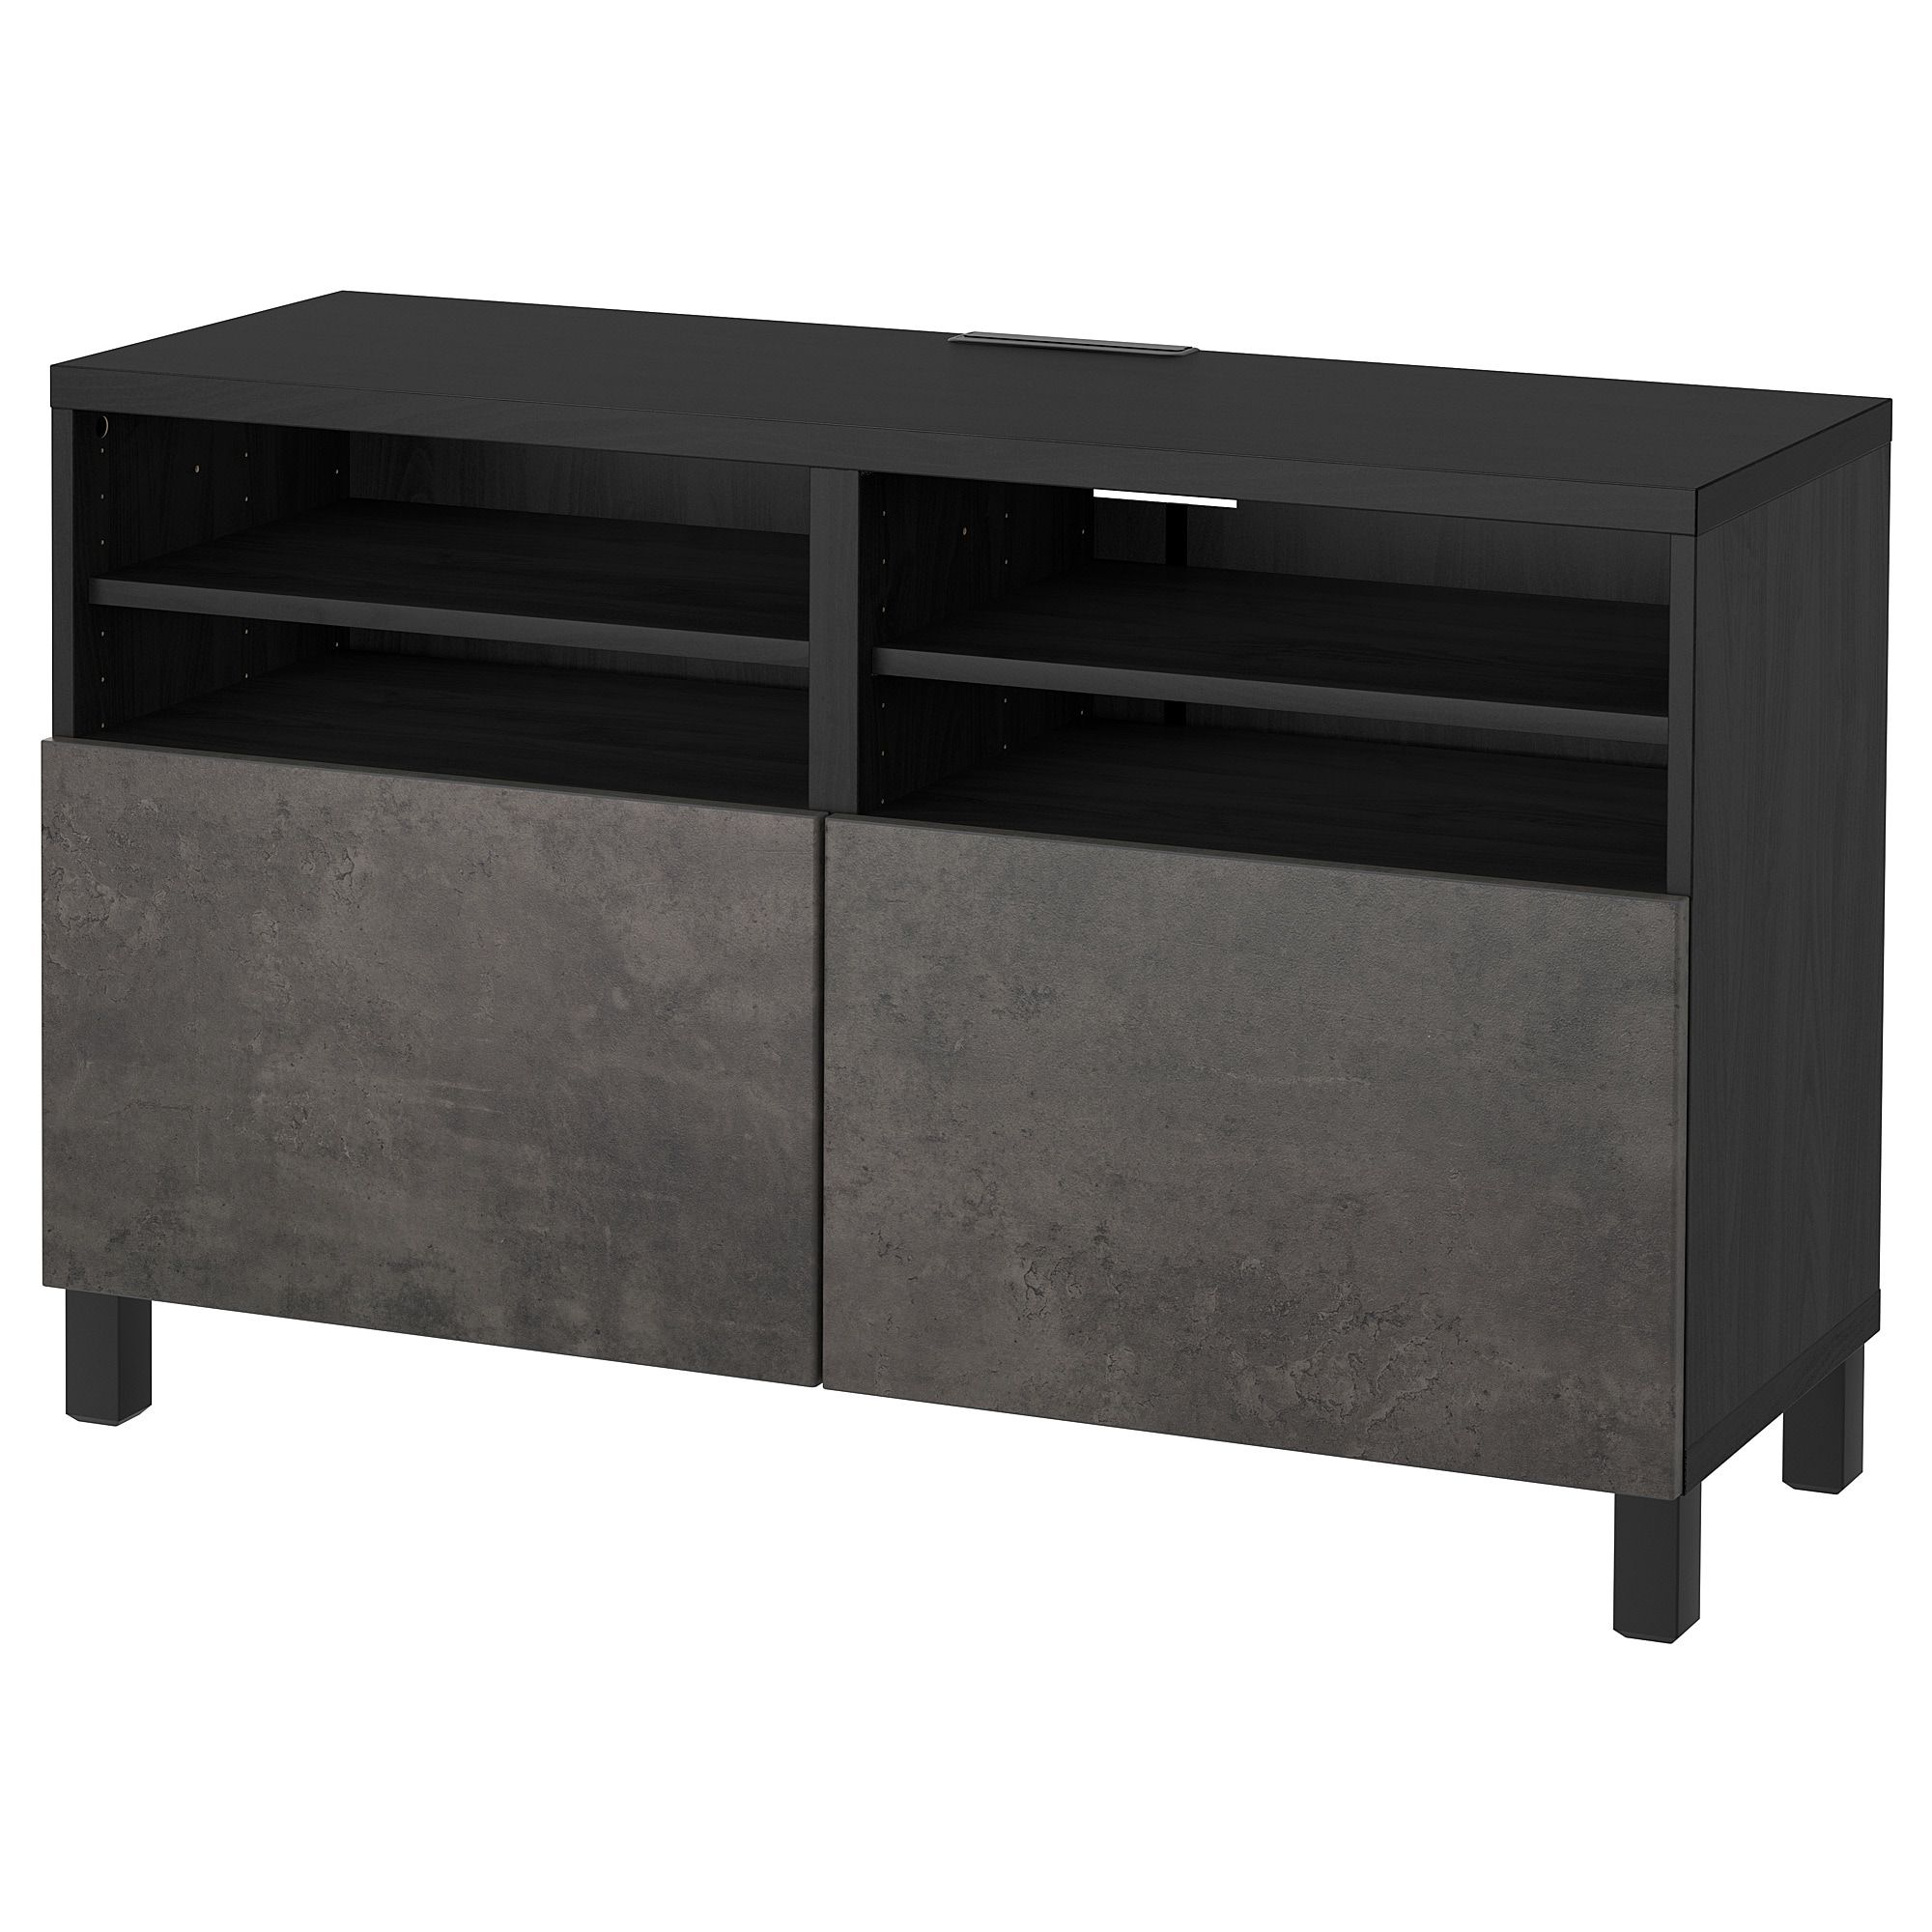 Bahut Noir Ikea BestÅ Tv Unit With Doors Black Brown Kallviken Stubbarp Dark